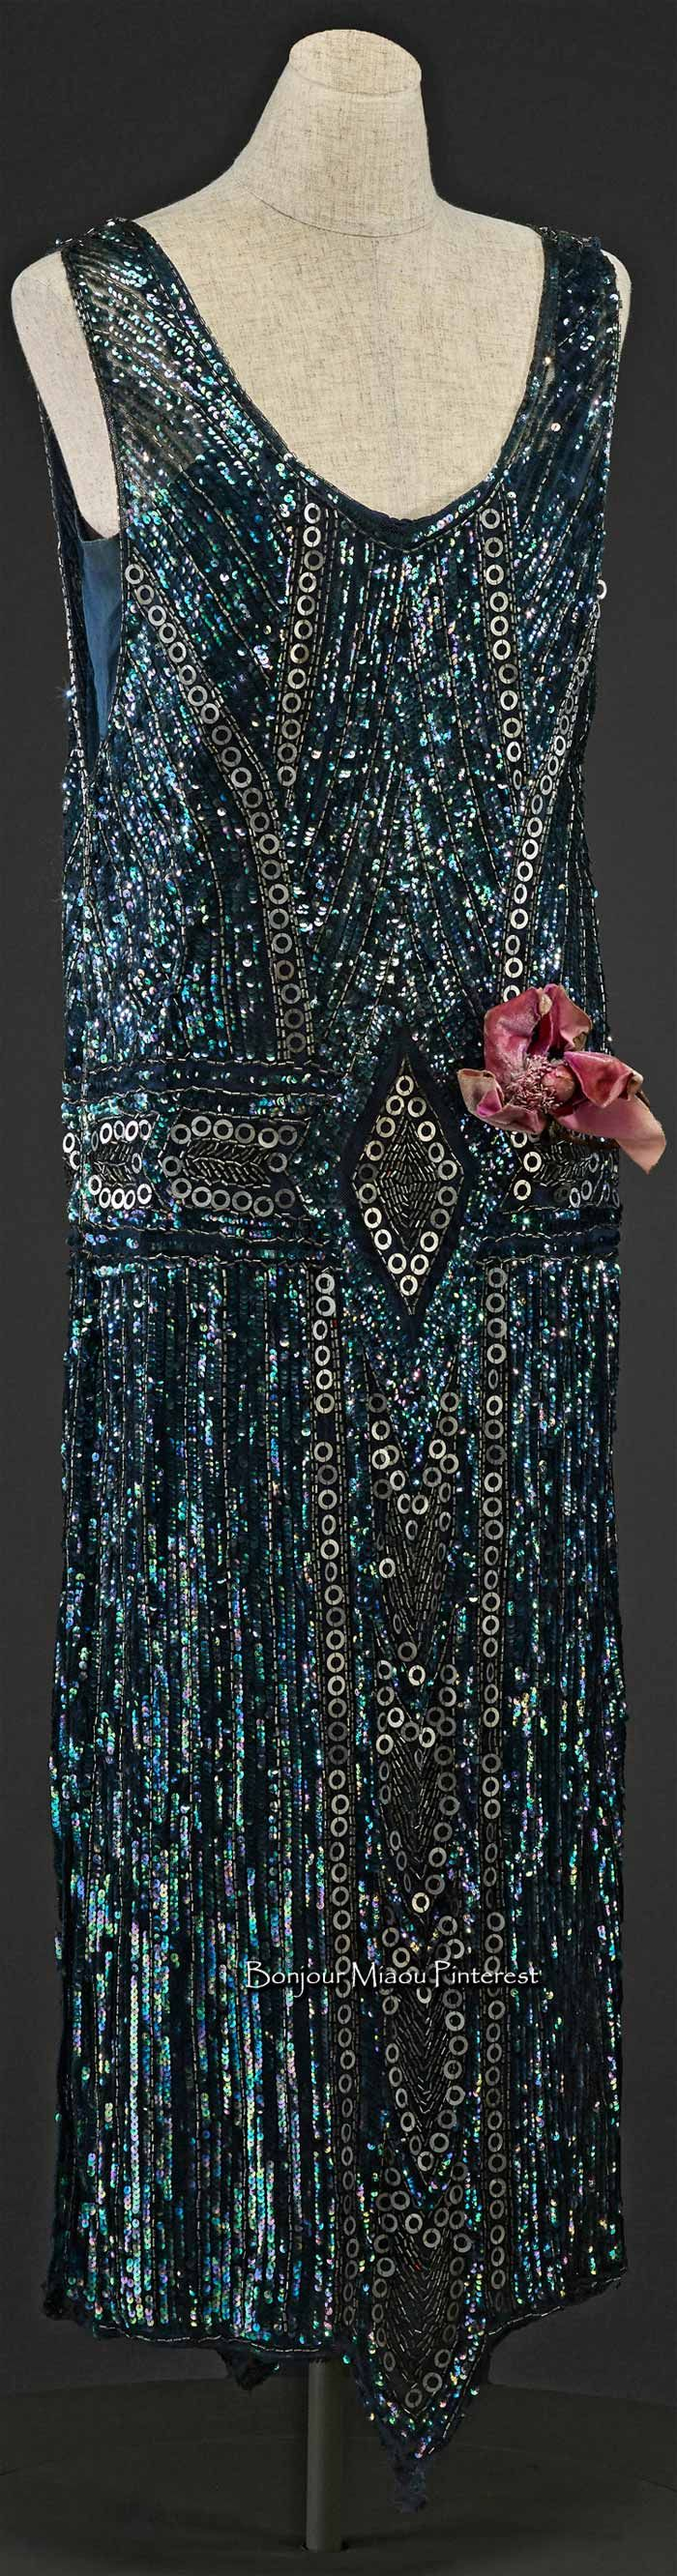 Evening dress, American, ca. early 1920s. Silk, net, sequins, glass beads. Indianapolis Museum of Art